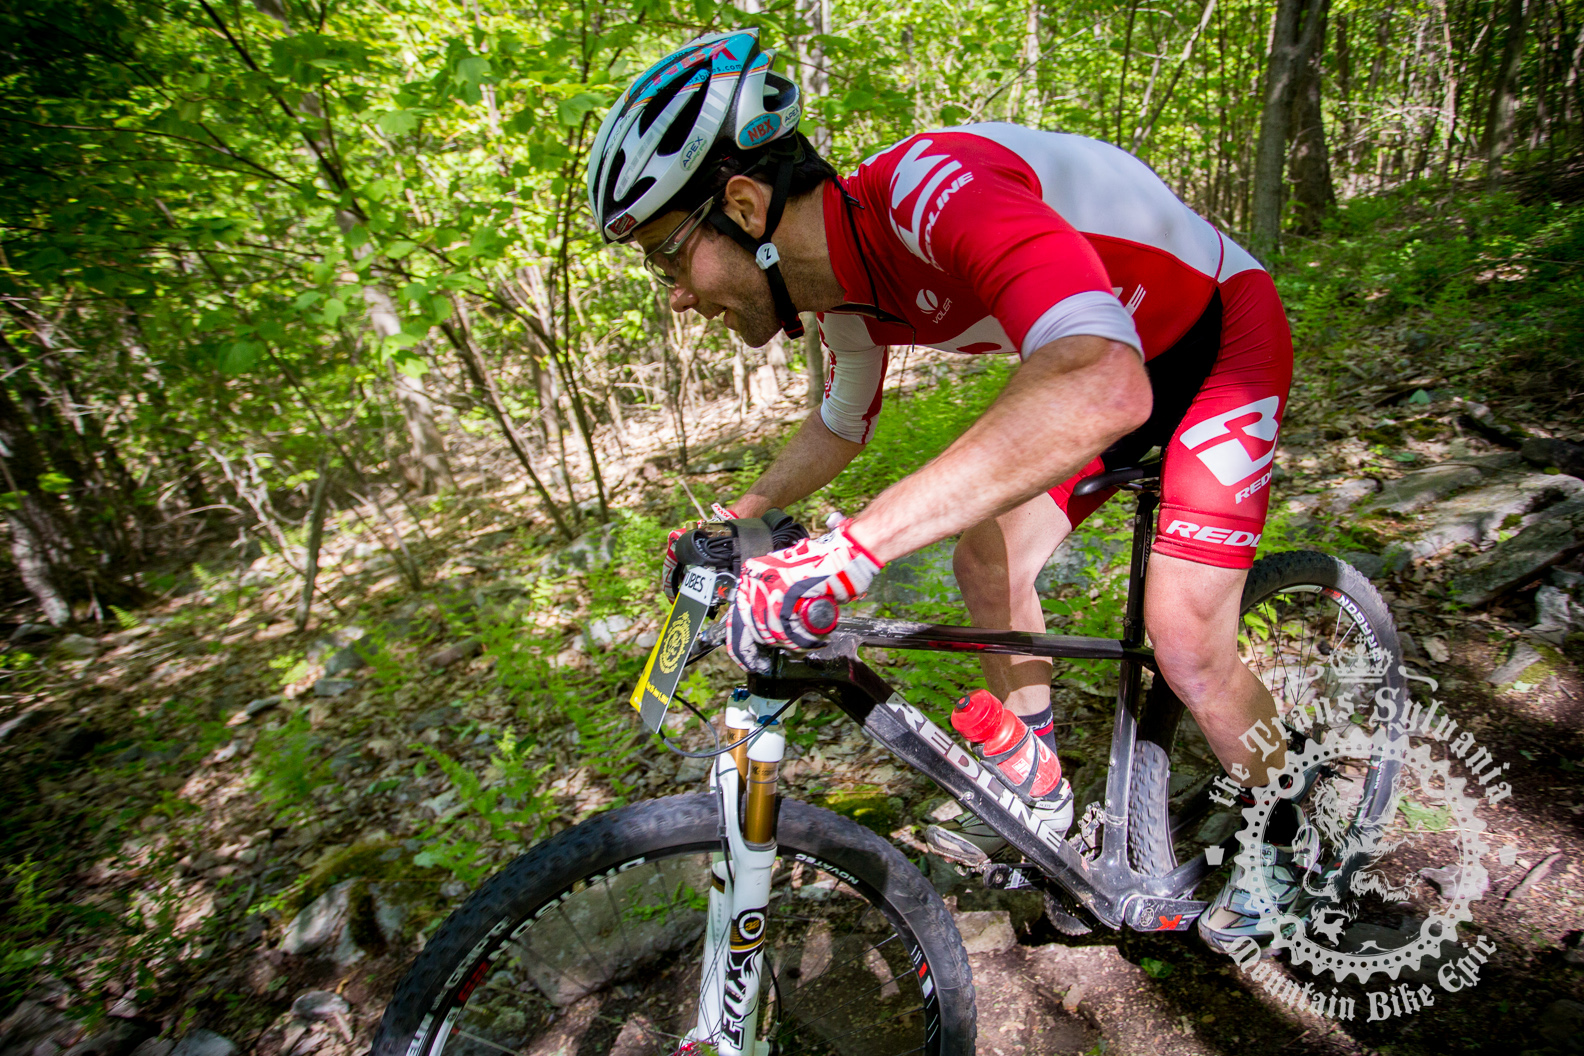 Justin Lindine passing through the rocky downhill section of the Prologue